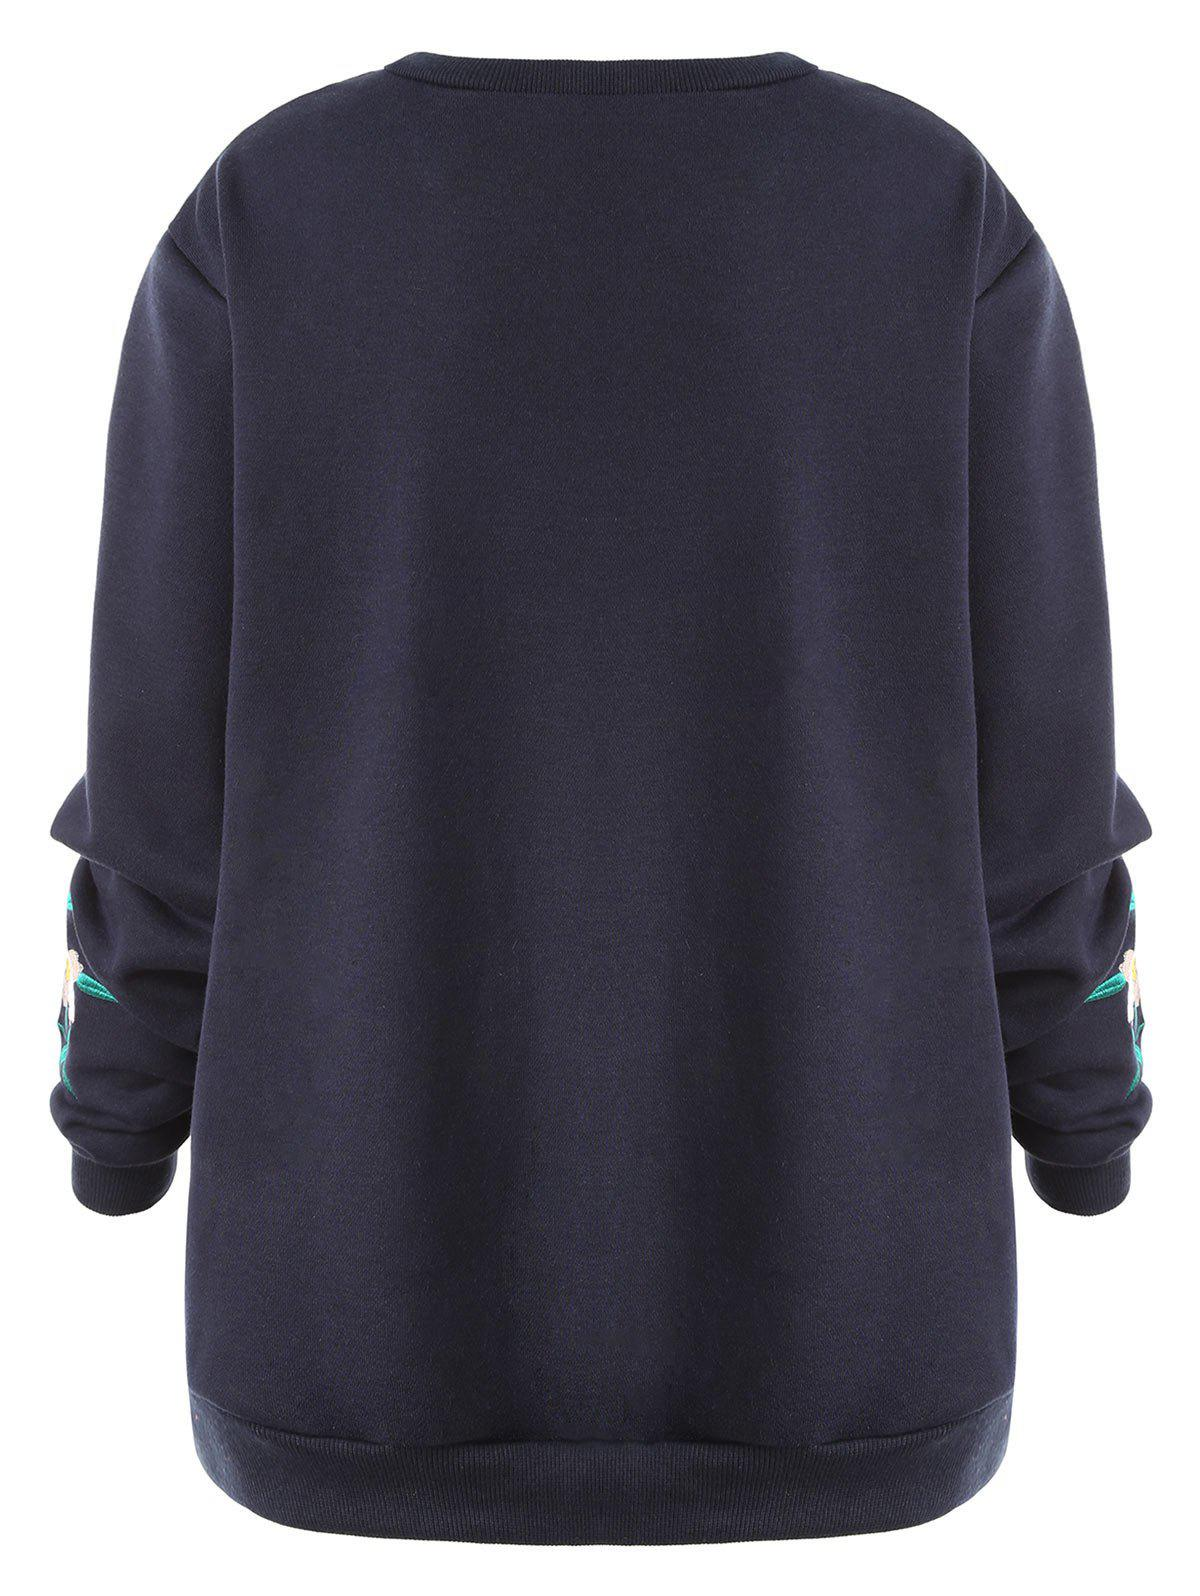 Plus Size Floral Embellished Sweatshirt - PURPLISH BLUE 4XL